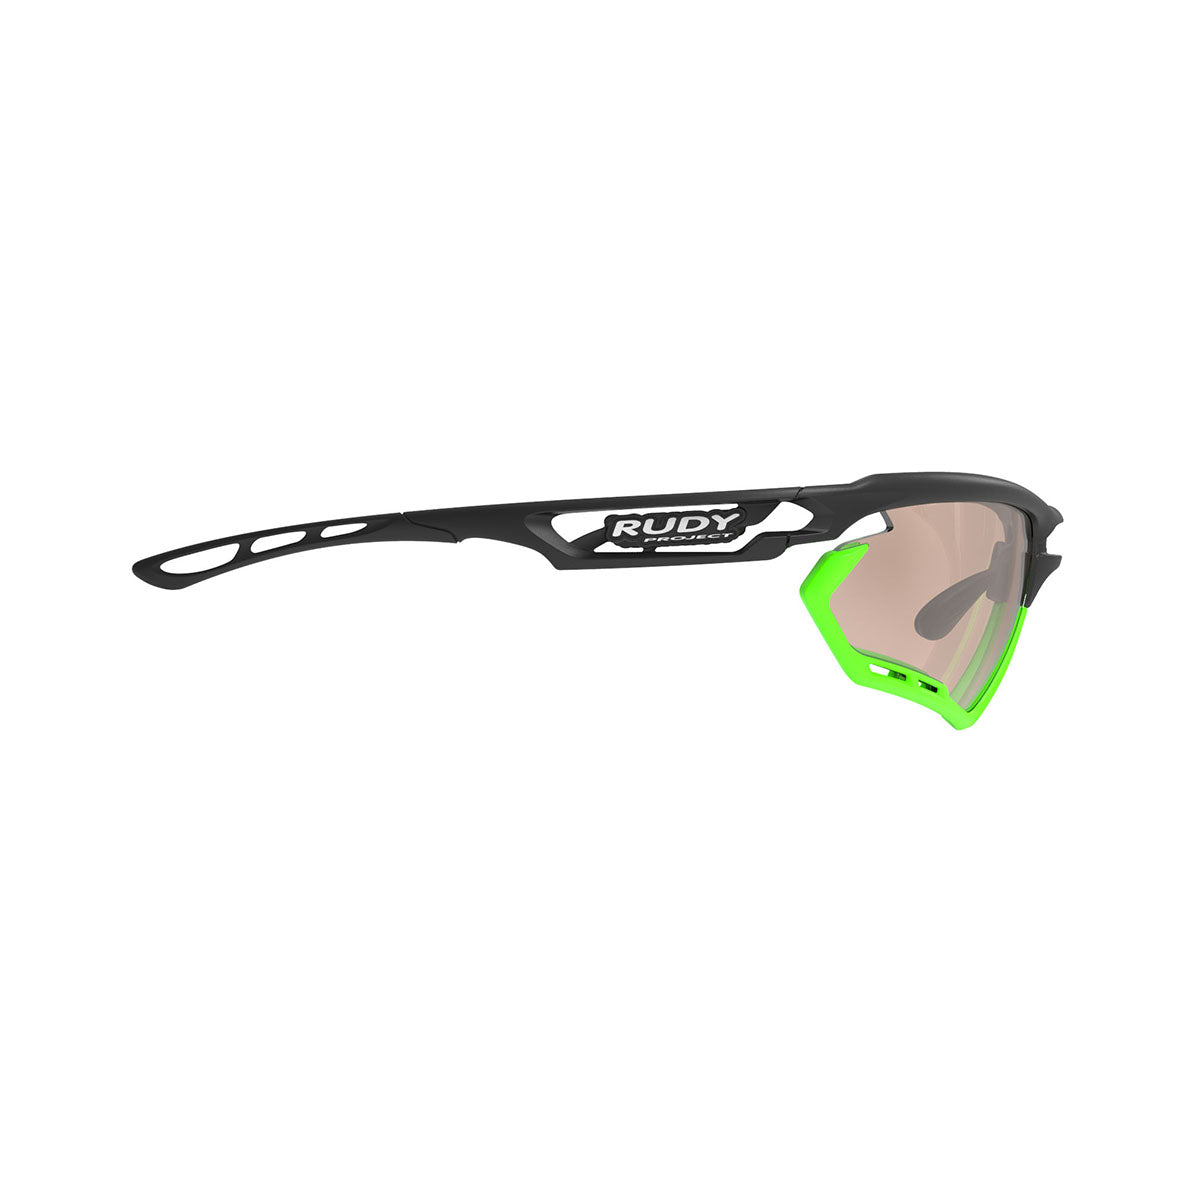 Rudy Project - Fotonyk - frame color: Matte Black - lens color: ImpactX-2 Photochromic Clear to Laser Brown - Bumper Color: Lime - photo angle: Side Variant Hover Image